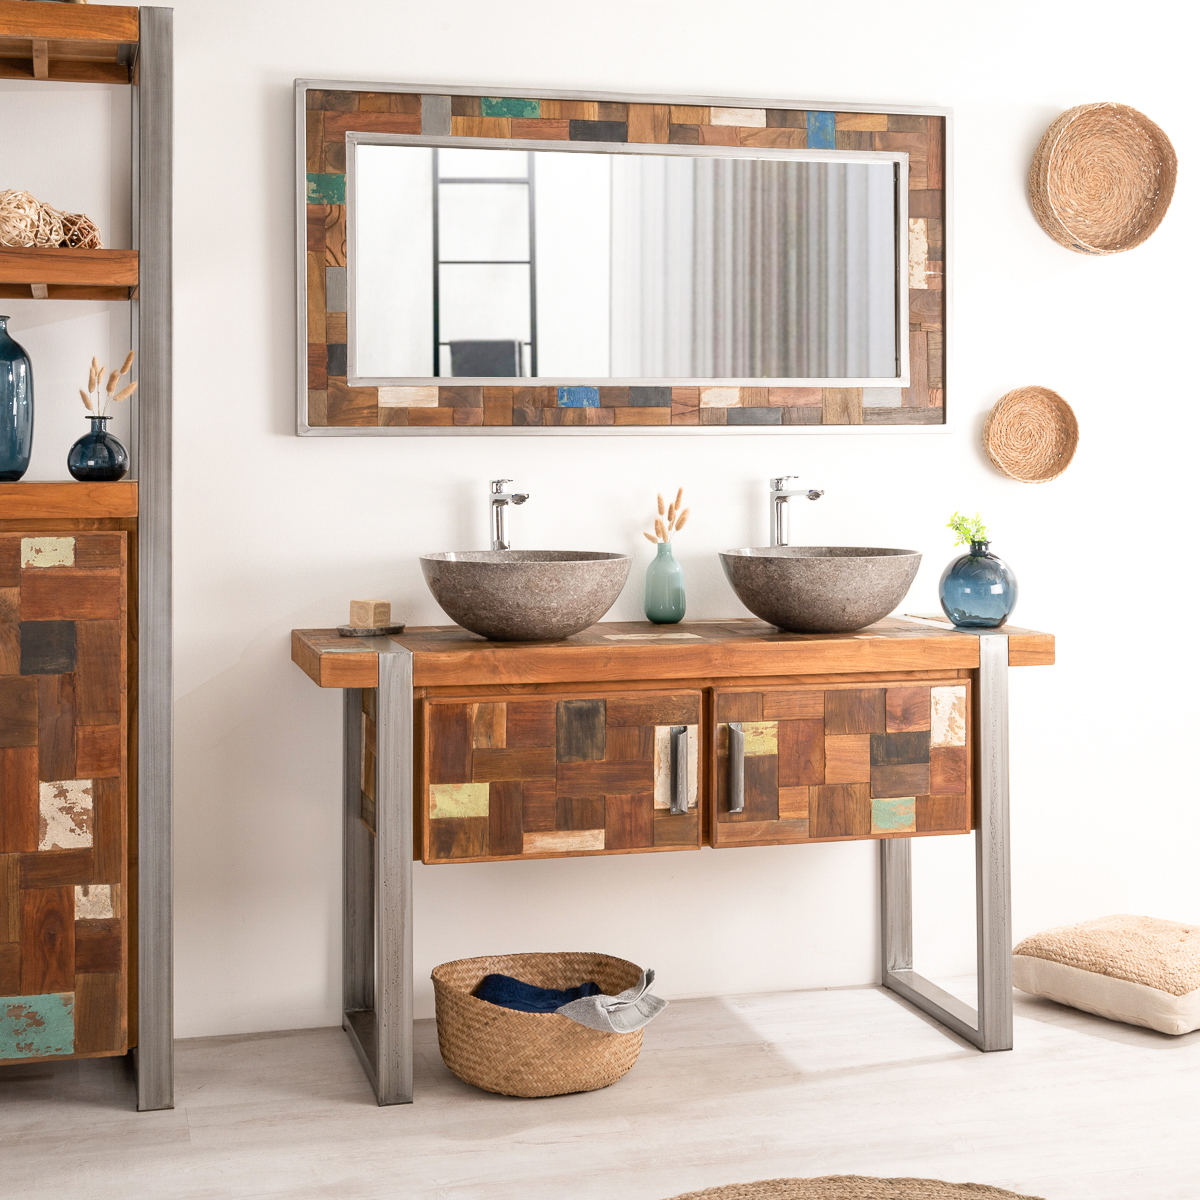 miroir de d coration en bois teck massif et m tal. Black Bedroom Furniture Sets. Home Design Ideas